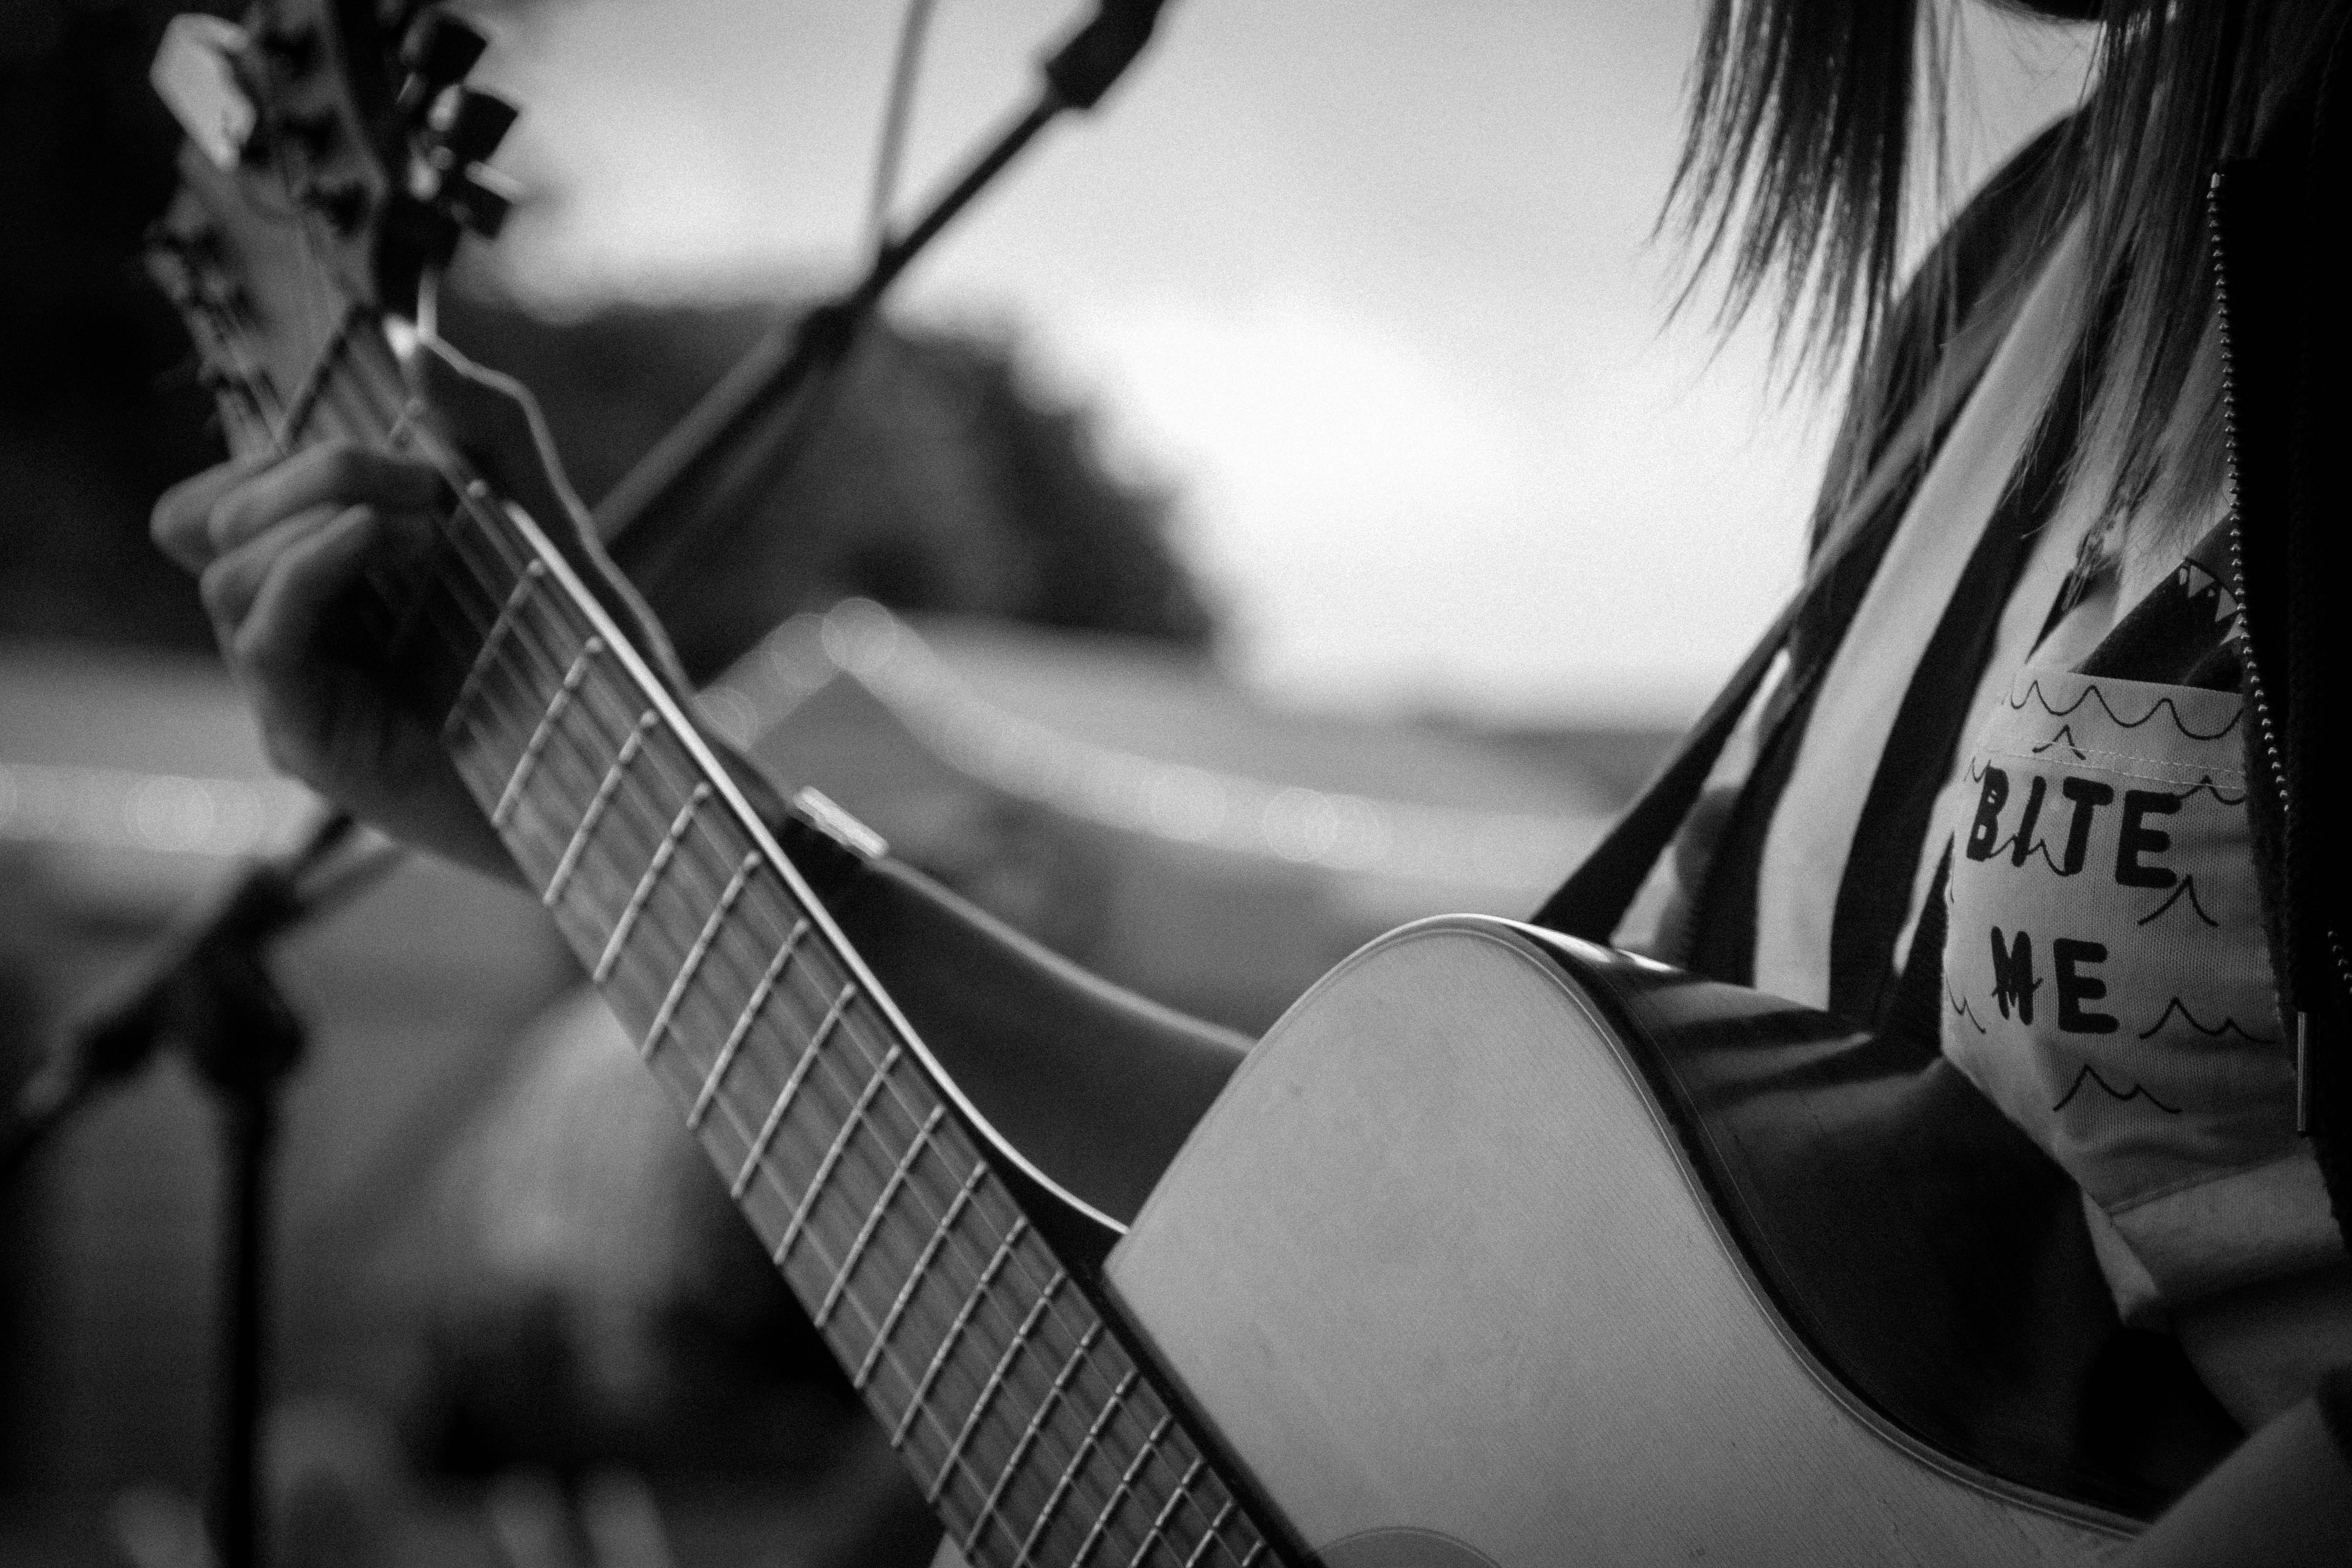 Black and white close up shot of person playing guitar with microphone, England